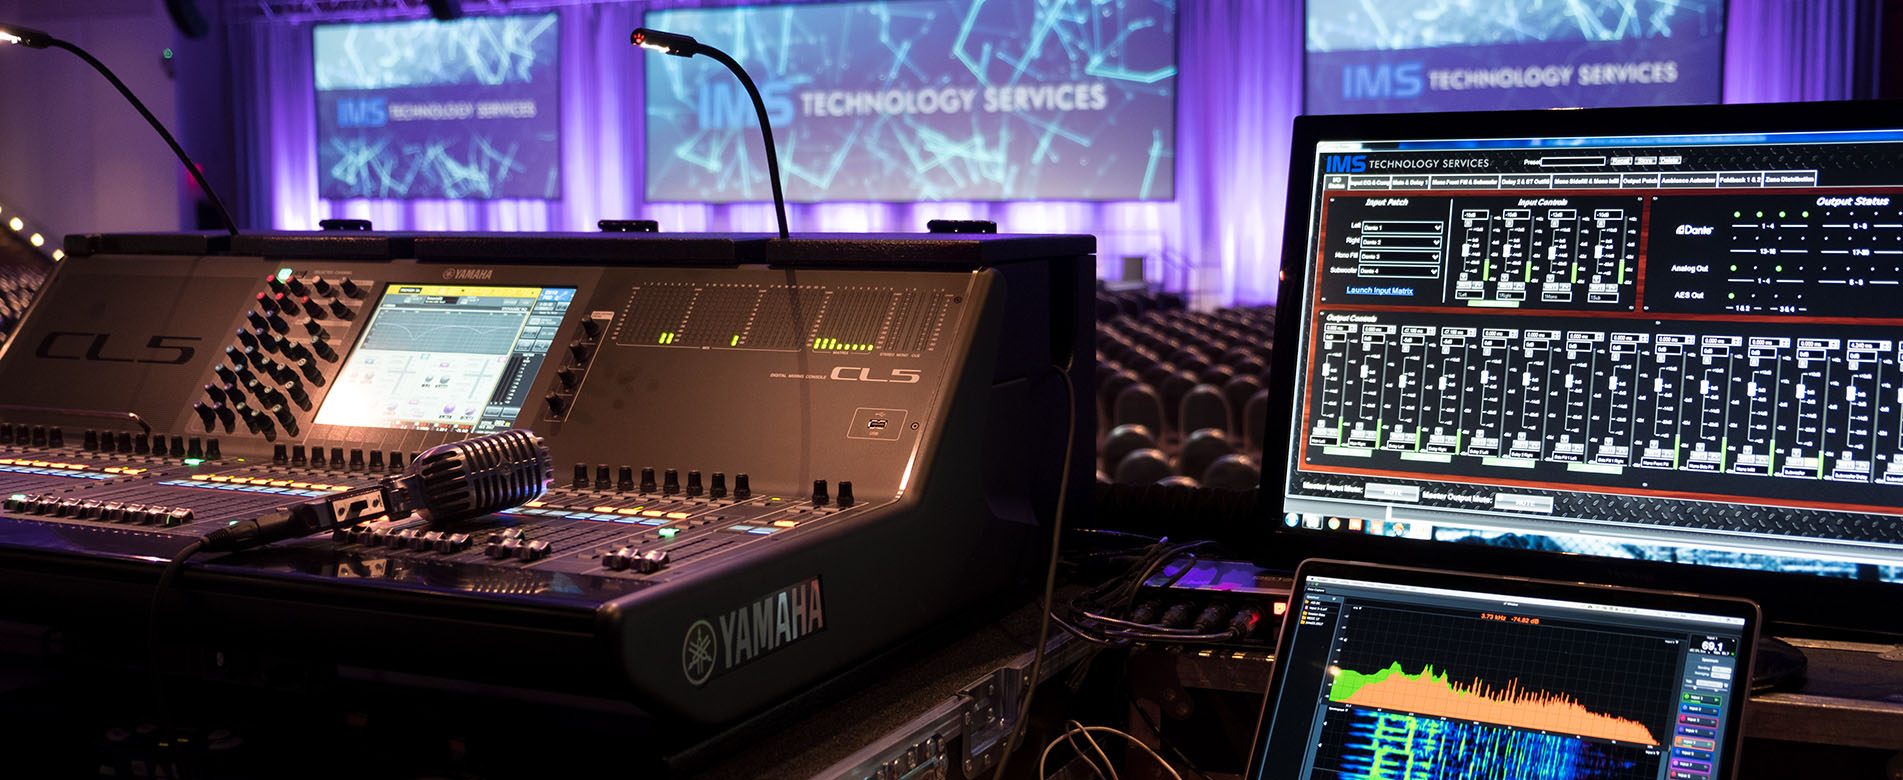 event staging - audio, video, lighting